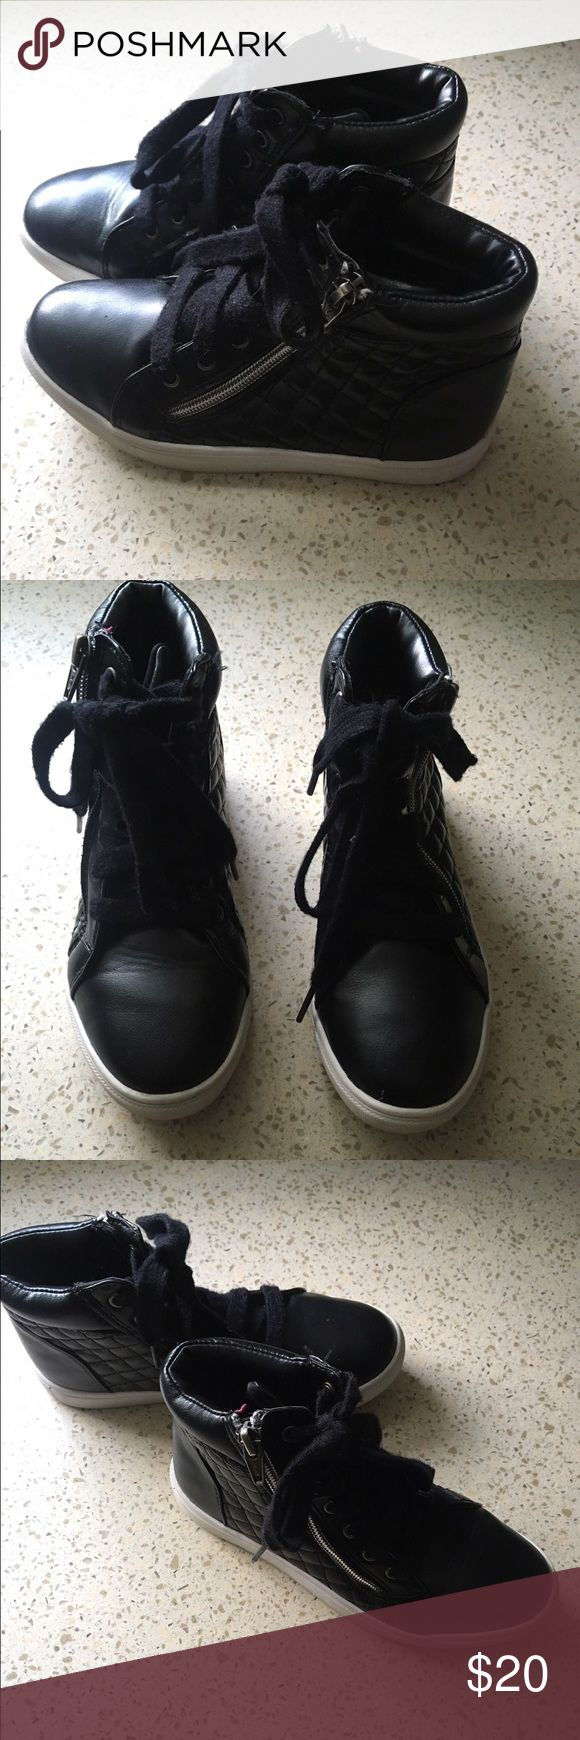 Girls Stevie Black Leather Hi-Tops-Size 2 EUC-Little Girls Stevie's (Steve Madden for kids) Black Leather Hi-Top Sneakers-Size 2.  These were gently worn a few times.  Great condition-cute with leggings and a dress!  Asymetrical zipper on the sides if each shoe.  Item comes from a smoke free and pet free home!  Priced to Sell! Stevies by Steve Madden Shoes Sneakers